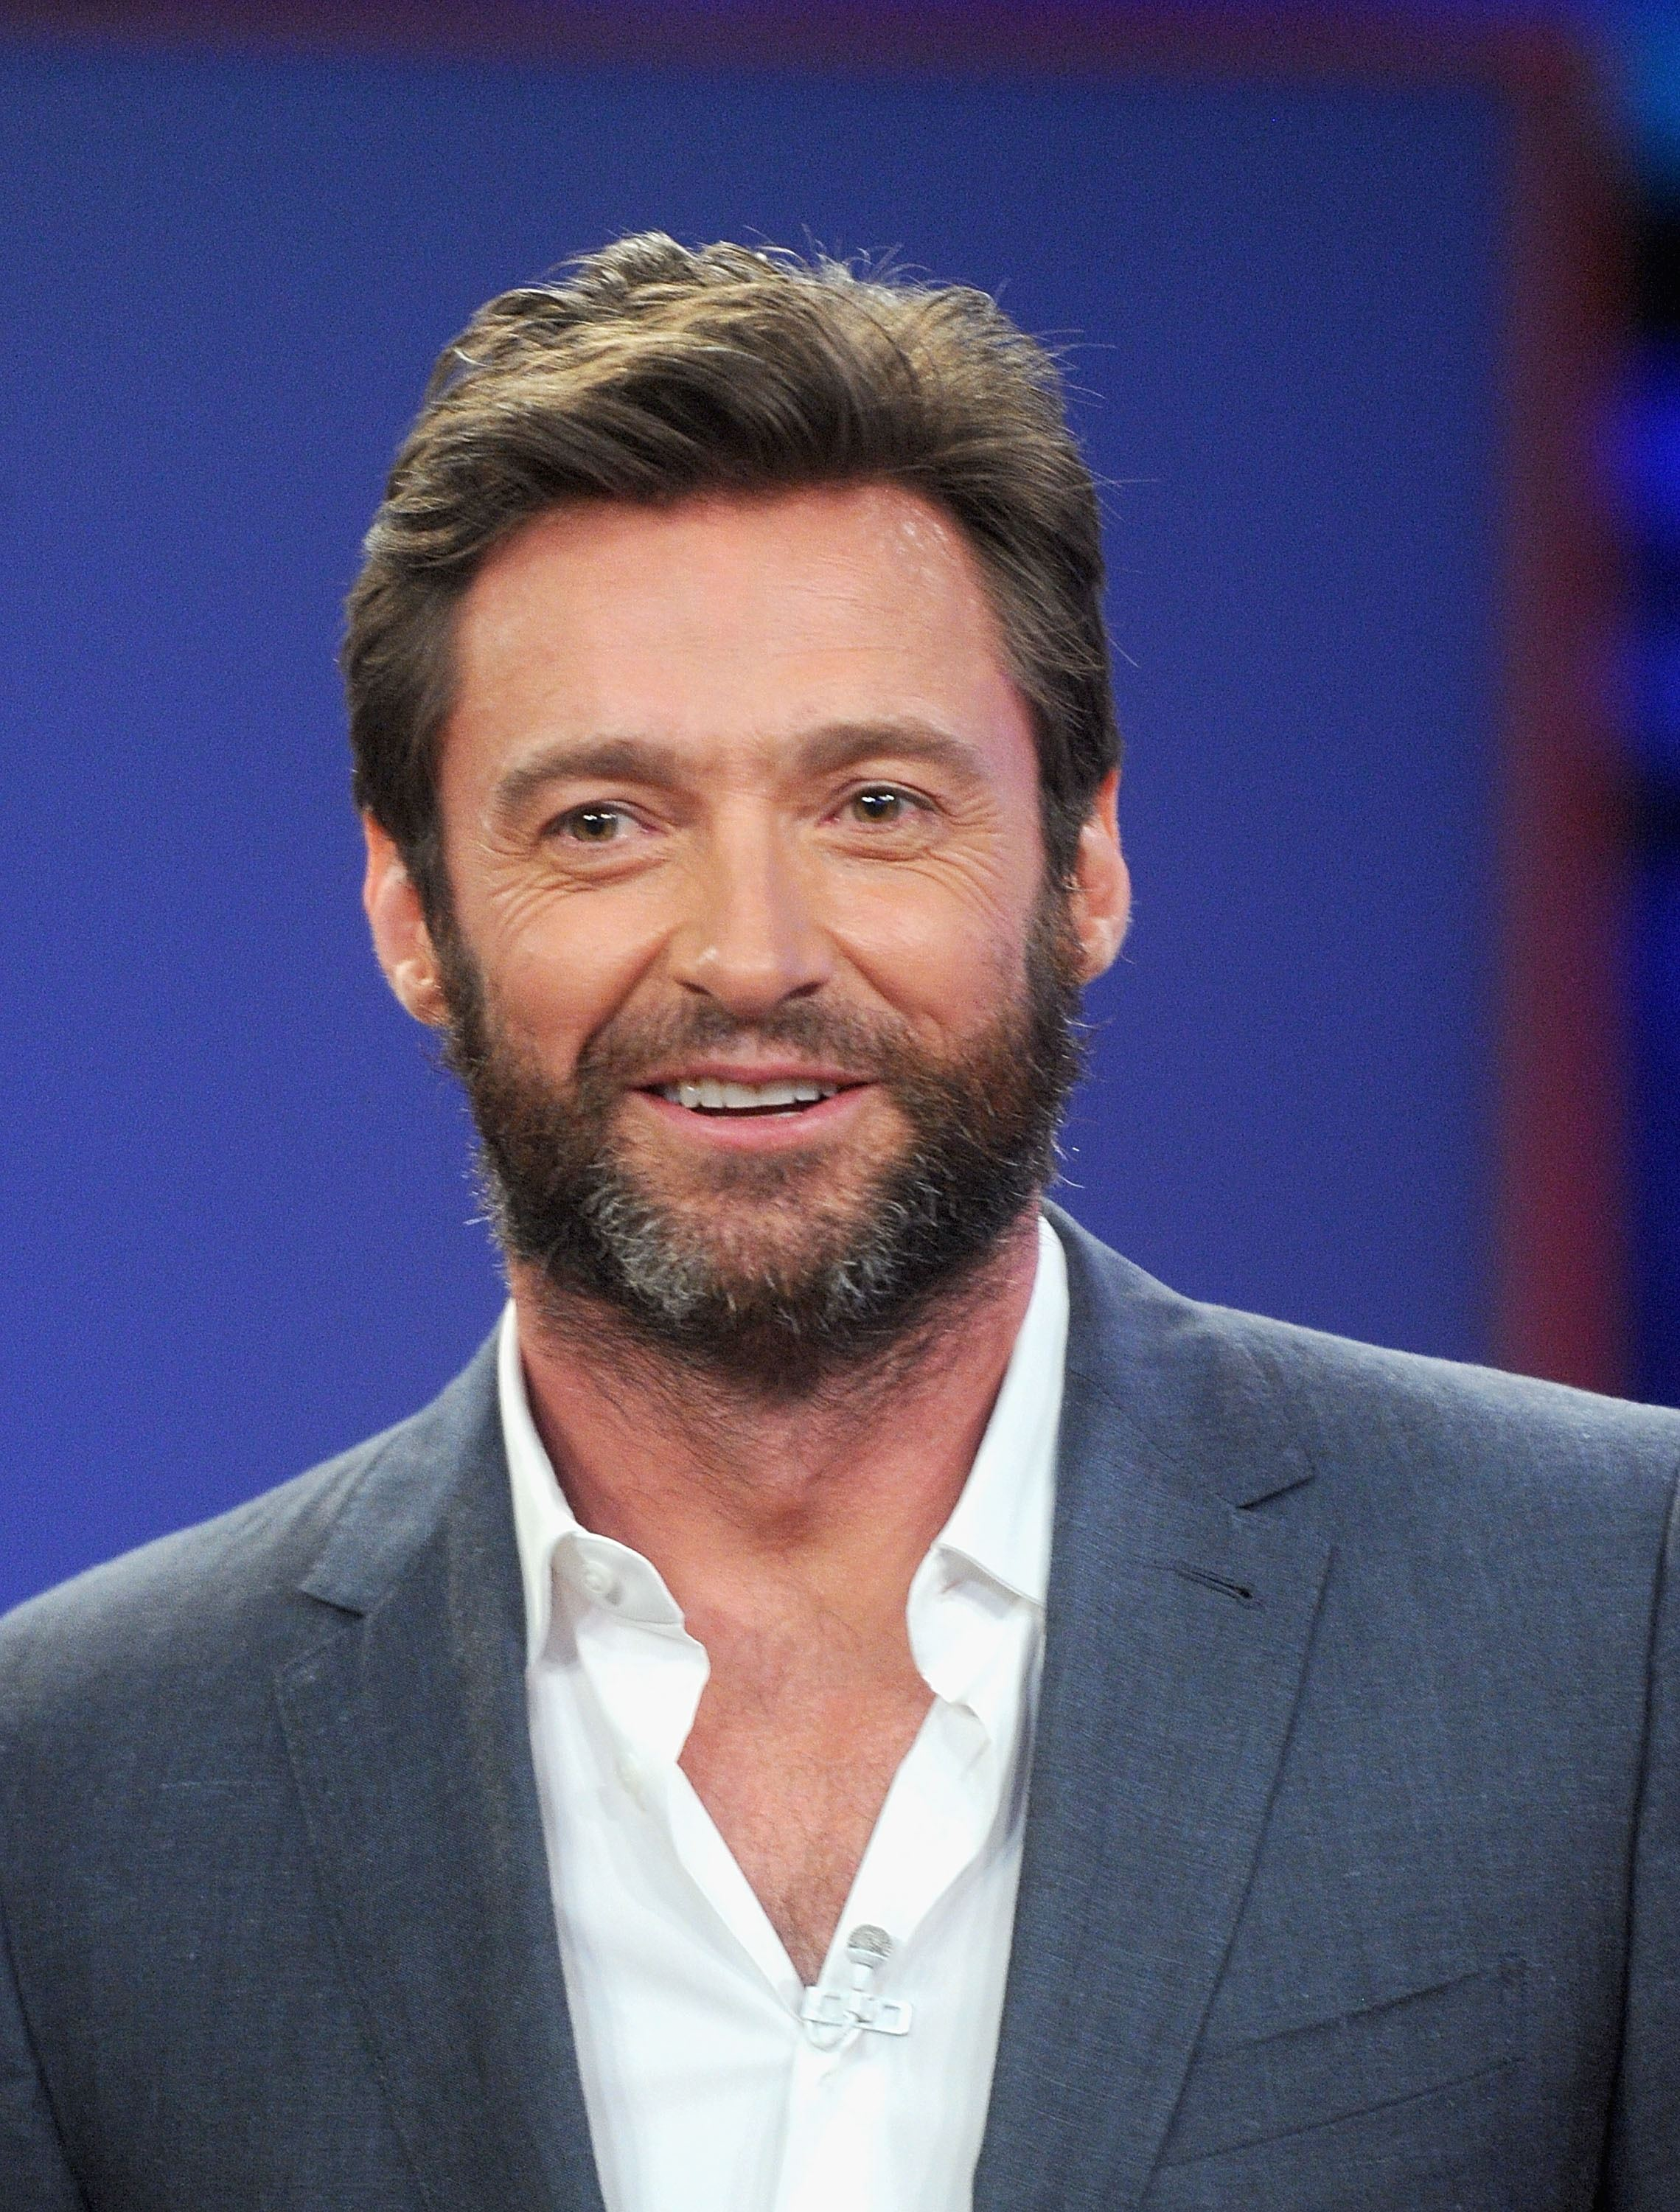 This is Hugh Jackman rocking out to the 'Bacon Pancakes' song from Adventure Time